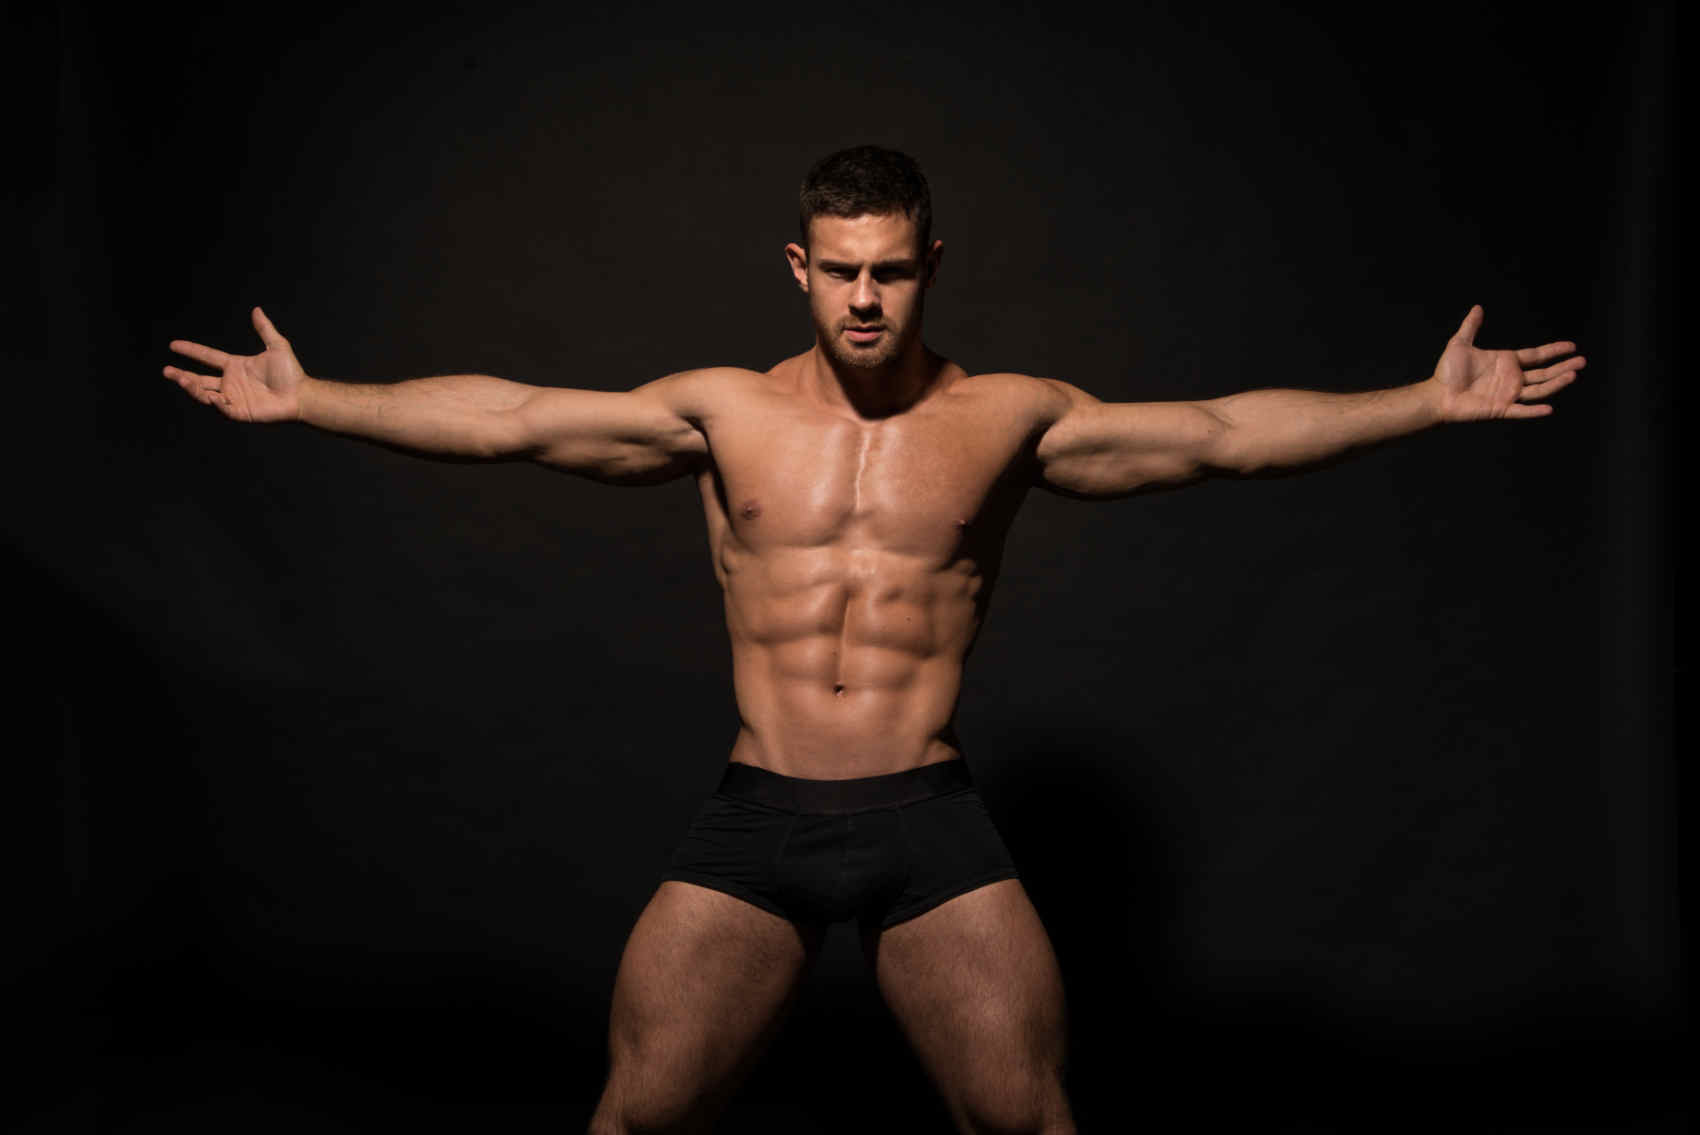 Find South Carolina Male Strippers for Guaranteed Fun & Excitement